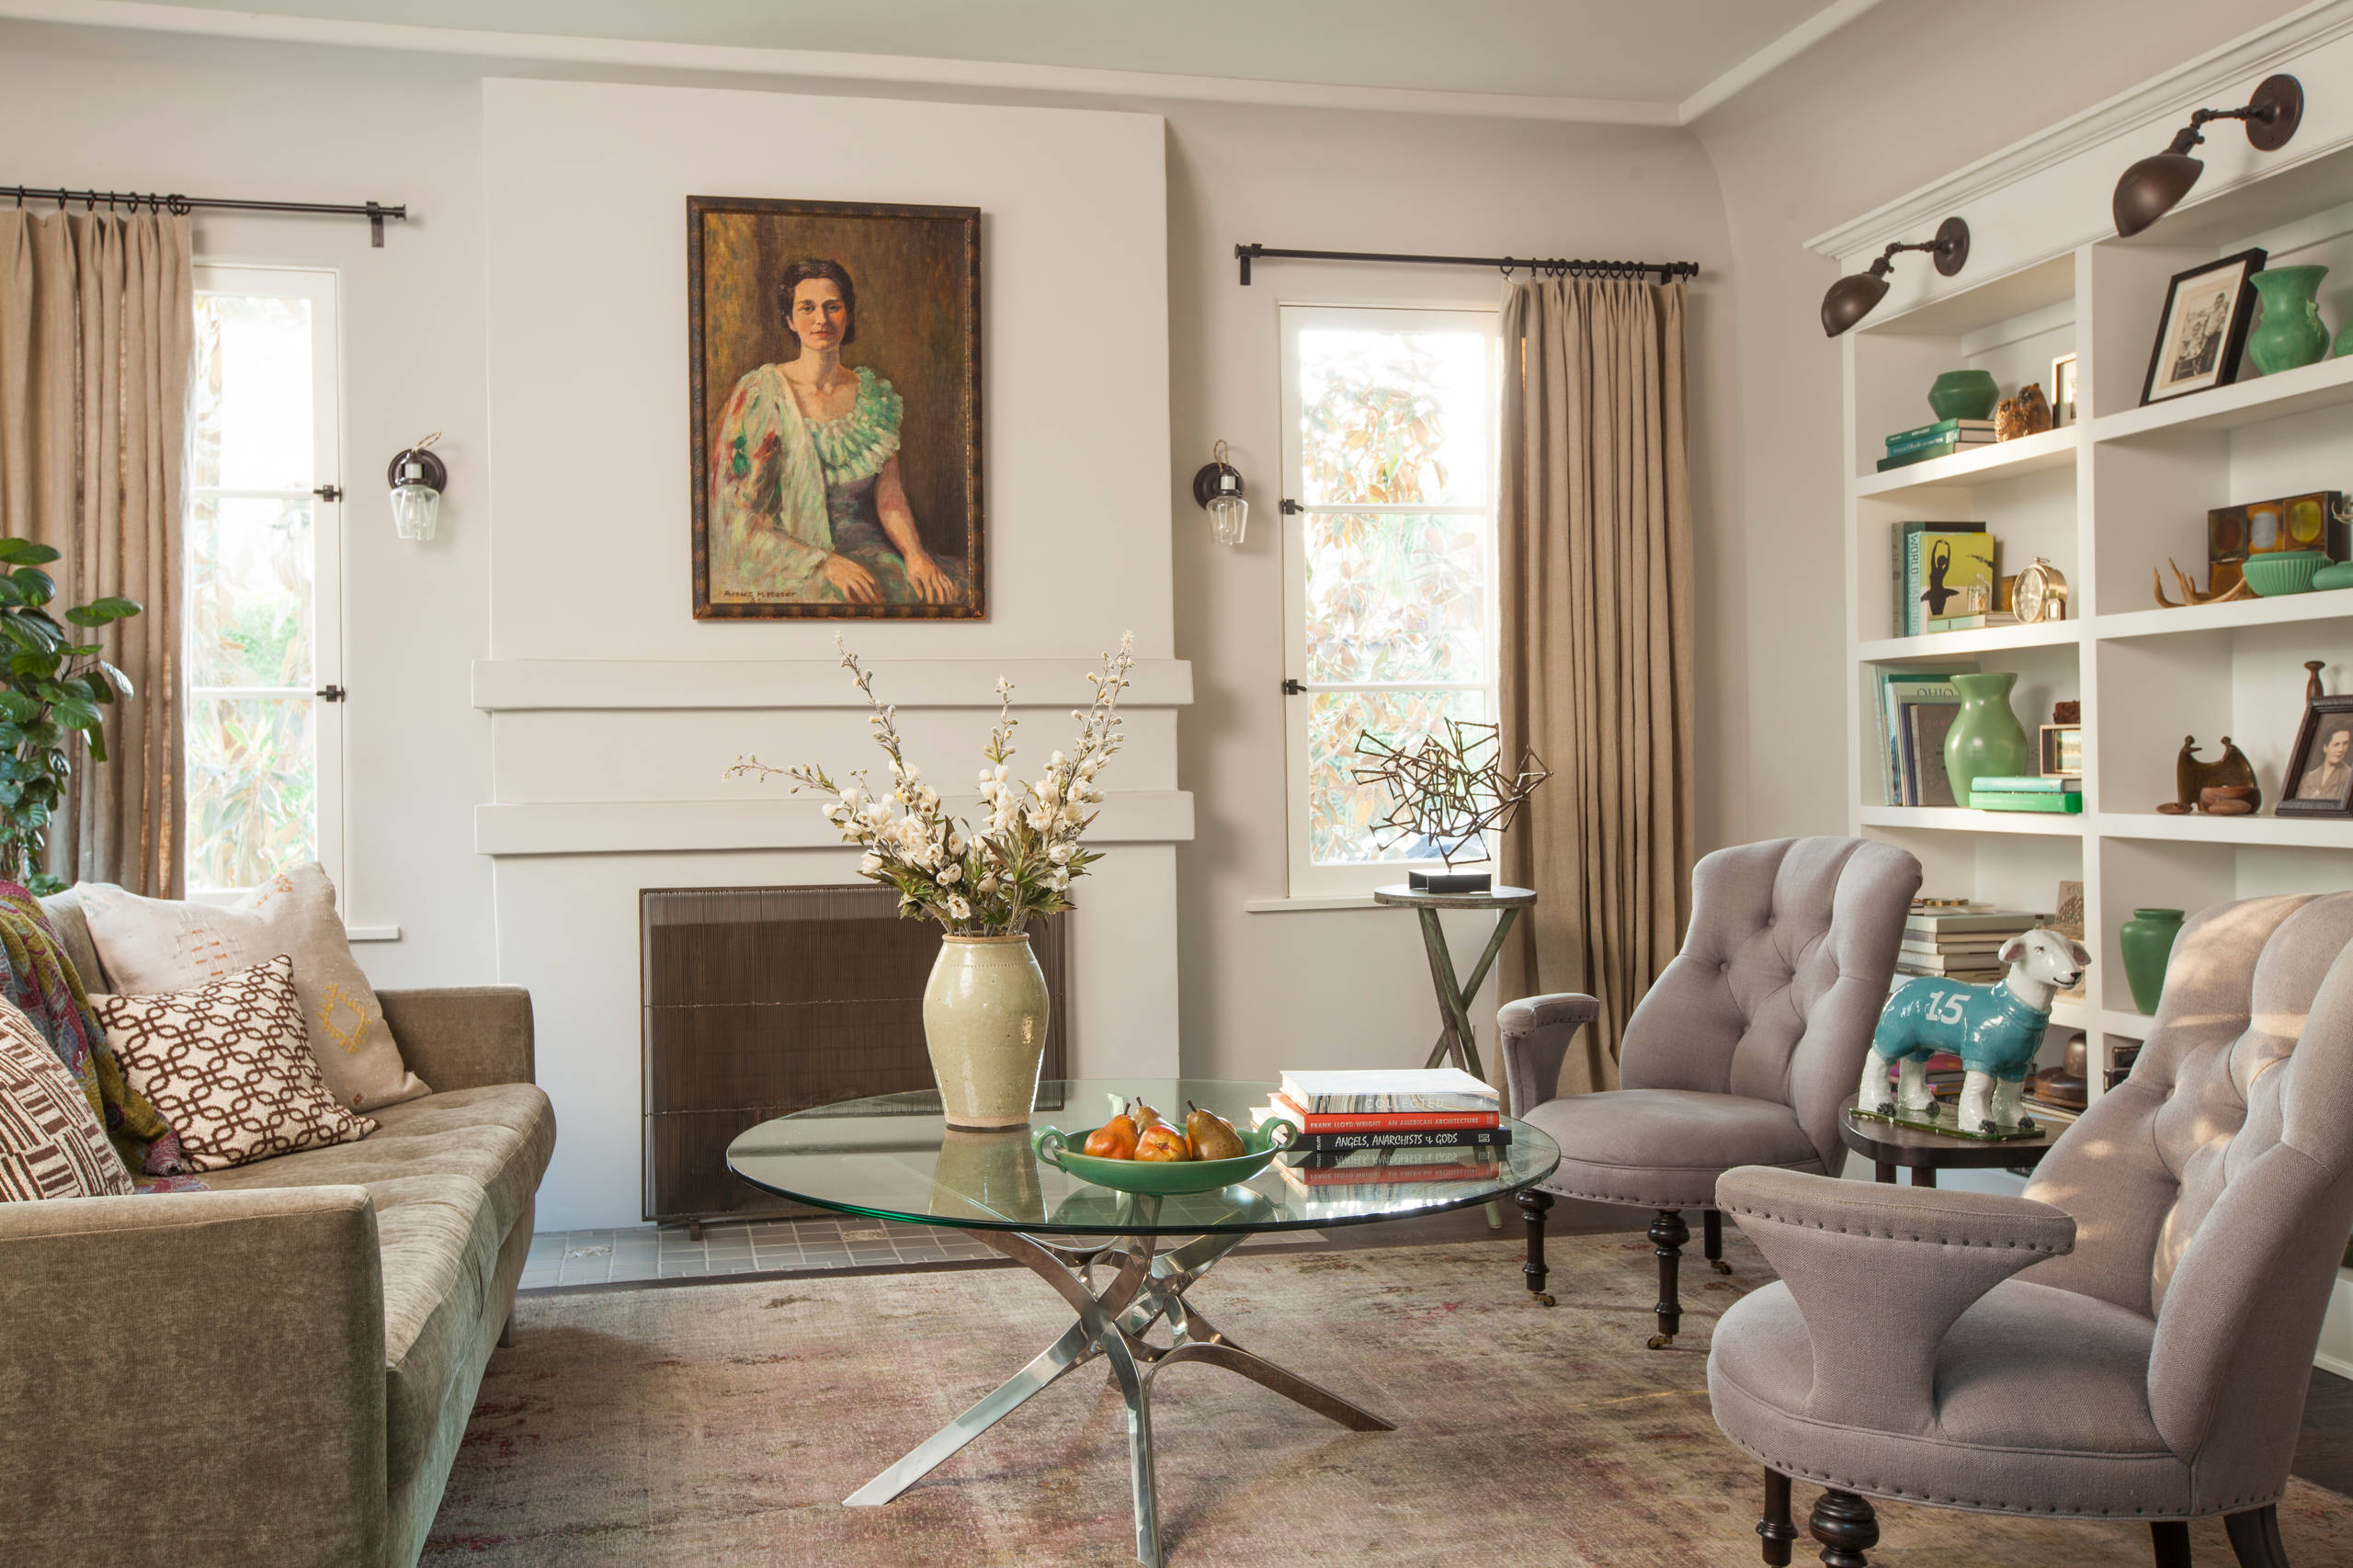 Classic Style Furniture fro Practical Chic Interiors. Real classicism emphasized by the large oil painting